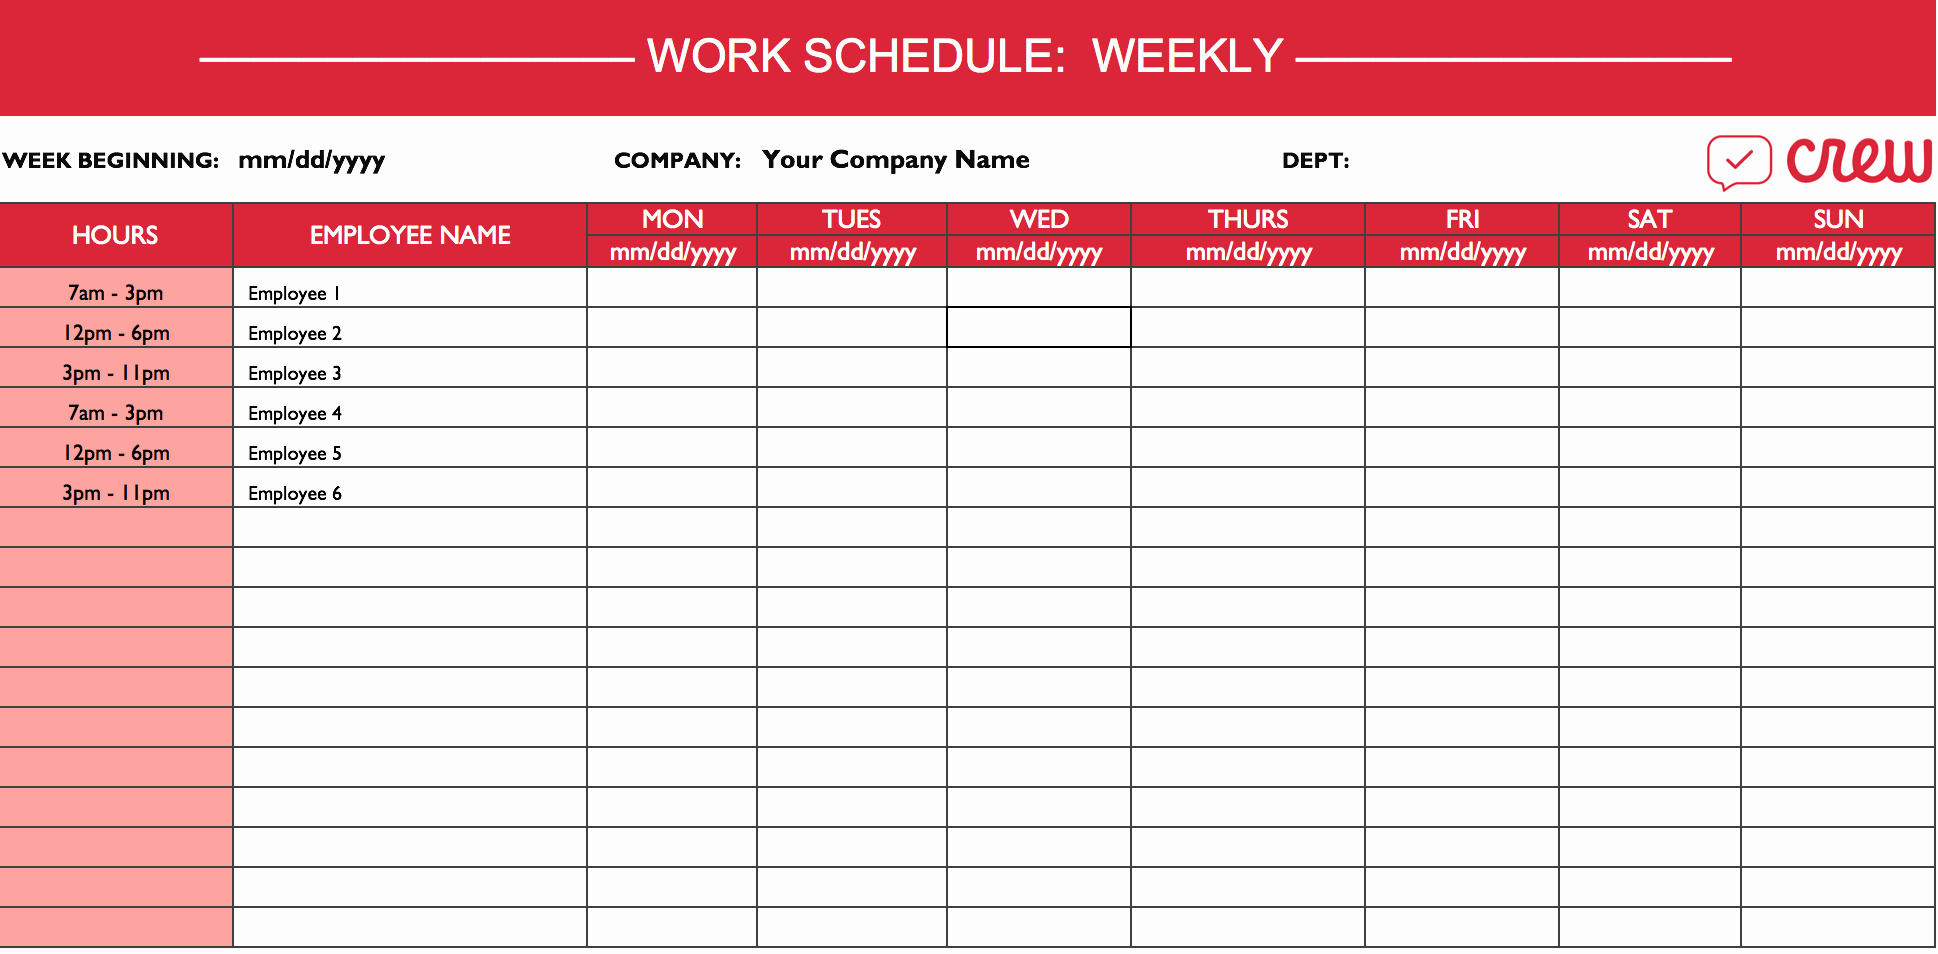 Weekly Work Schedule Template Pdf Unique Weekly Work Schedule Template I Crew